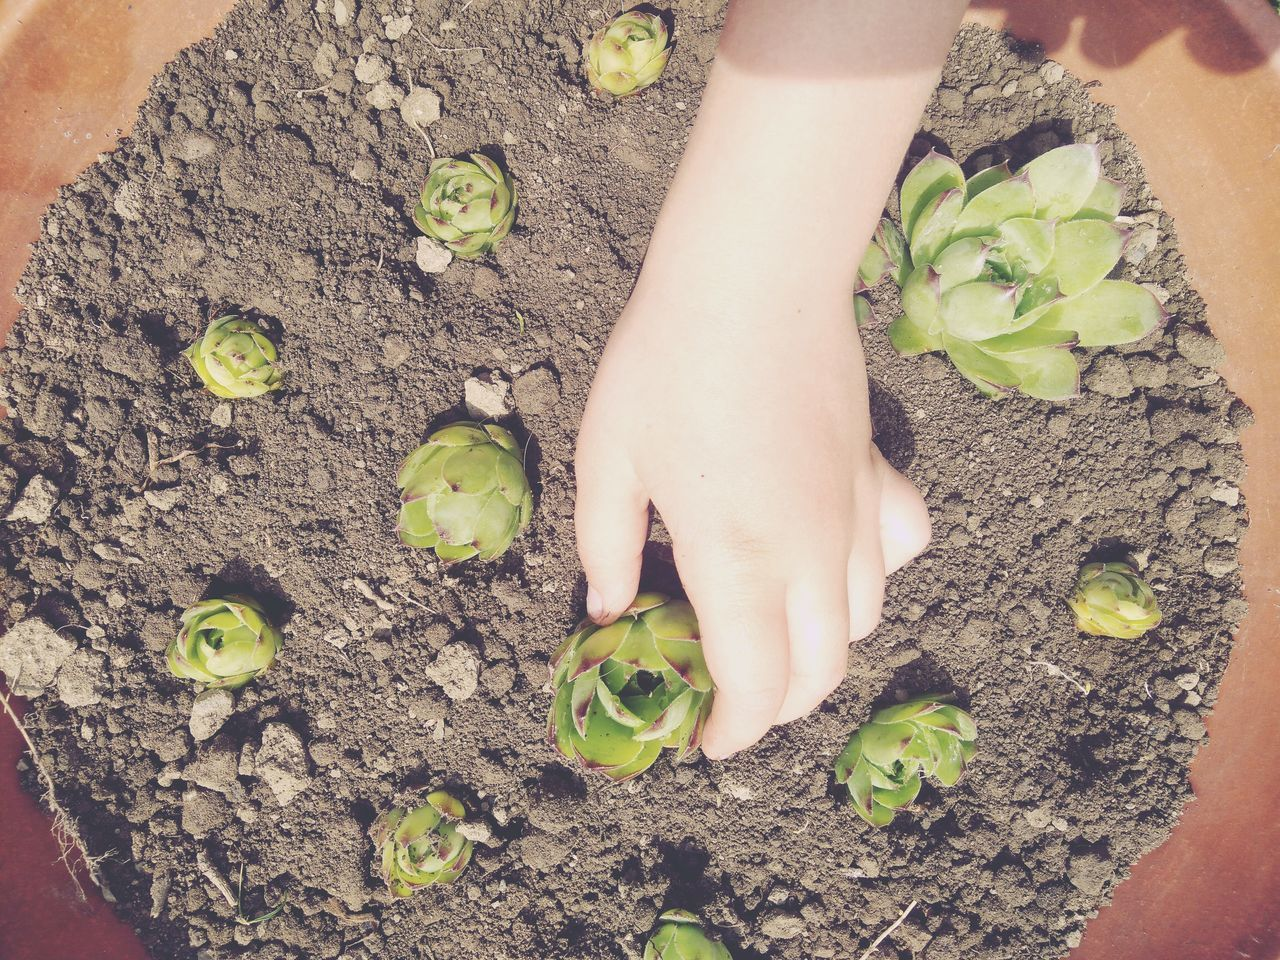 Replanting Succulent Houseleek Kids Hand Gardening Caring Fragility Growth Green Color Outdoors Beauty In Nature Flower Pot Teracotta Soil Kids Activities Cultivating Herbs Plants Layout Disposition Live For The Story